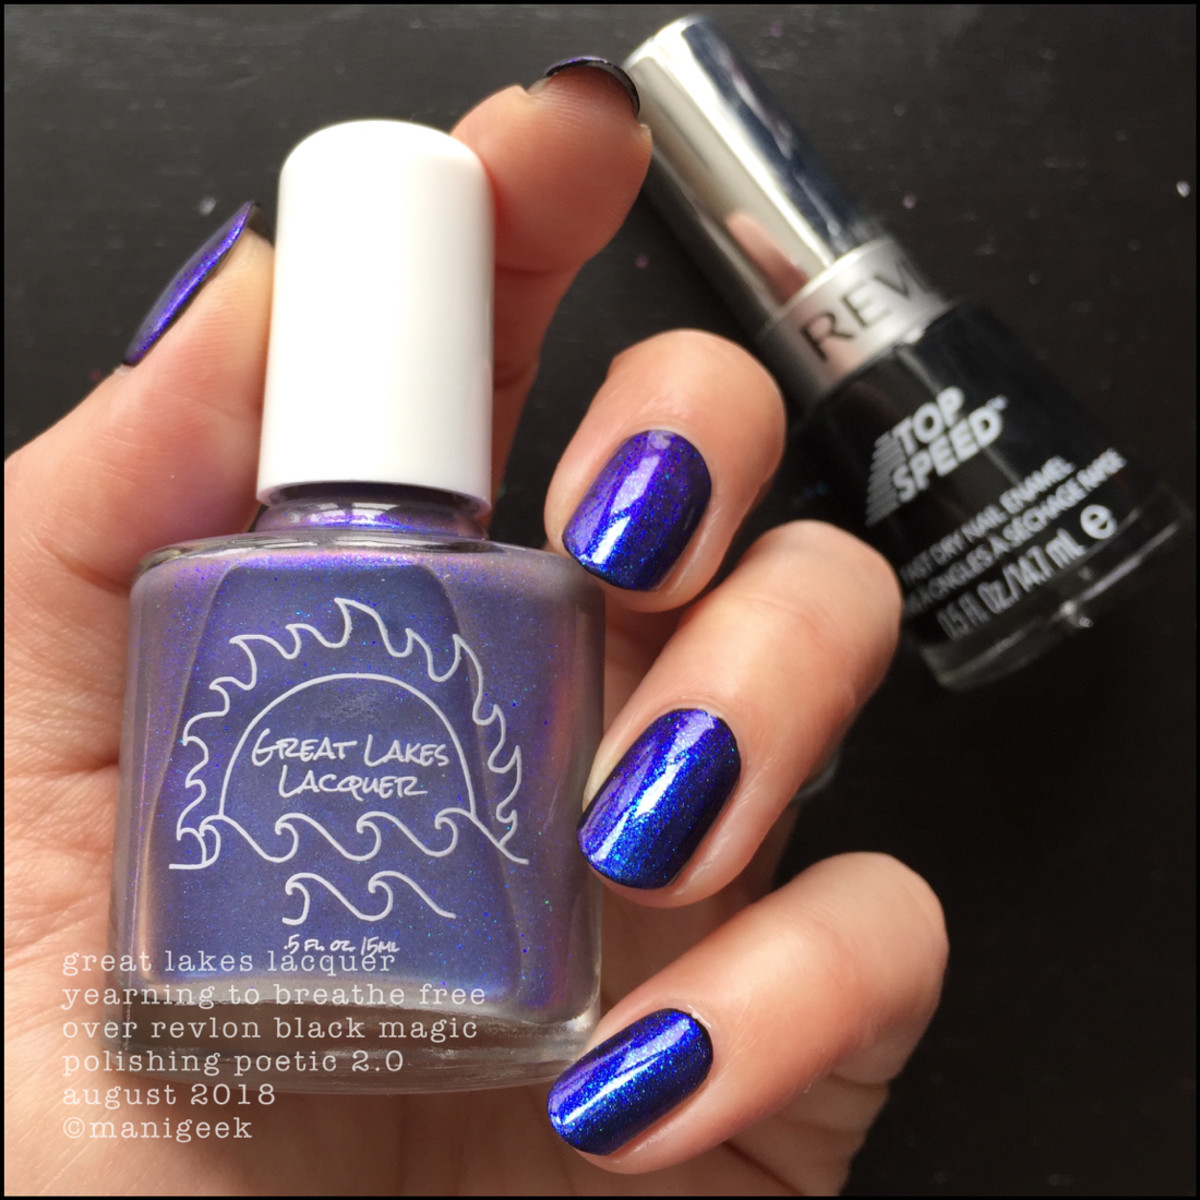 Great Lakes Lacquer Yearning to Breathe Free over Black 1 _ Great Lakes Lacquer Polishing Poetic 2.0 Swatches Review